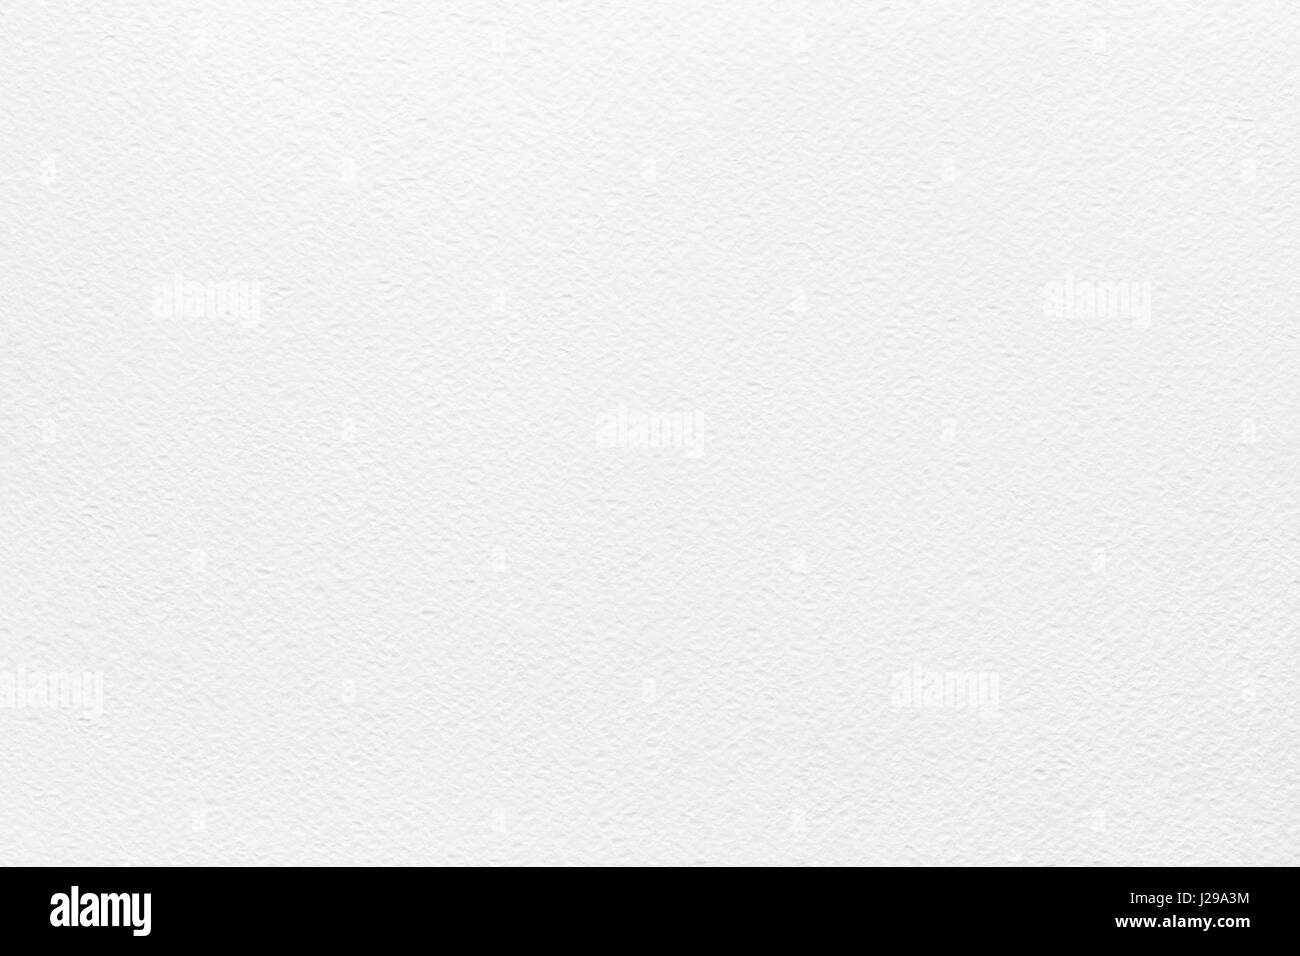 Background from white paper texture. - Stock Image